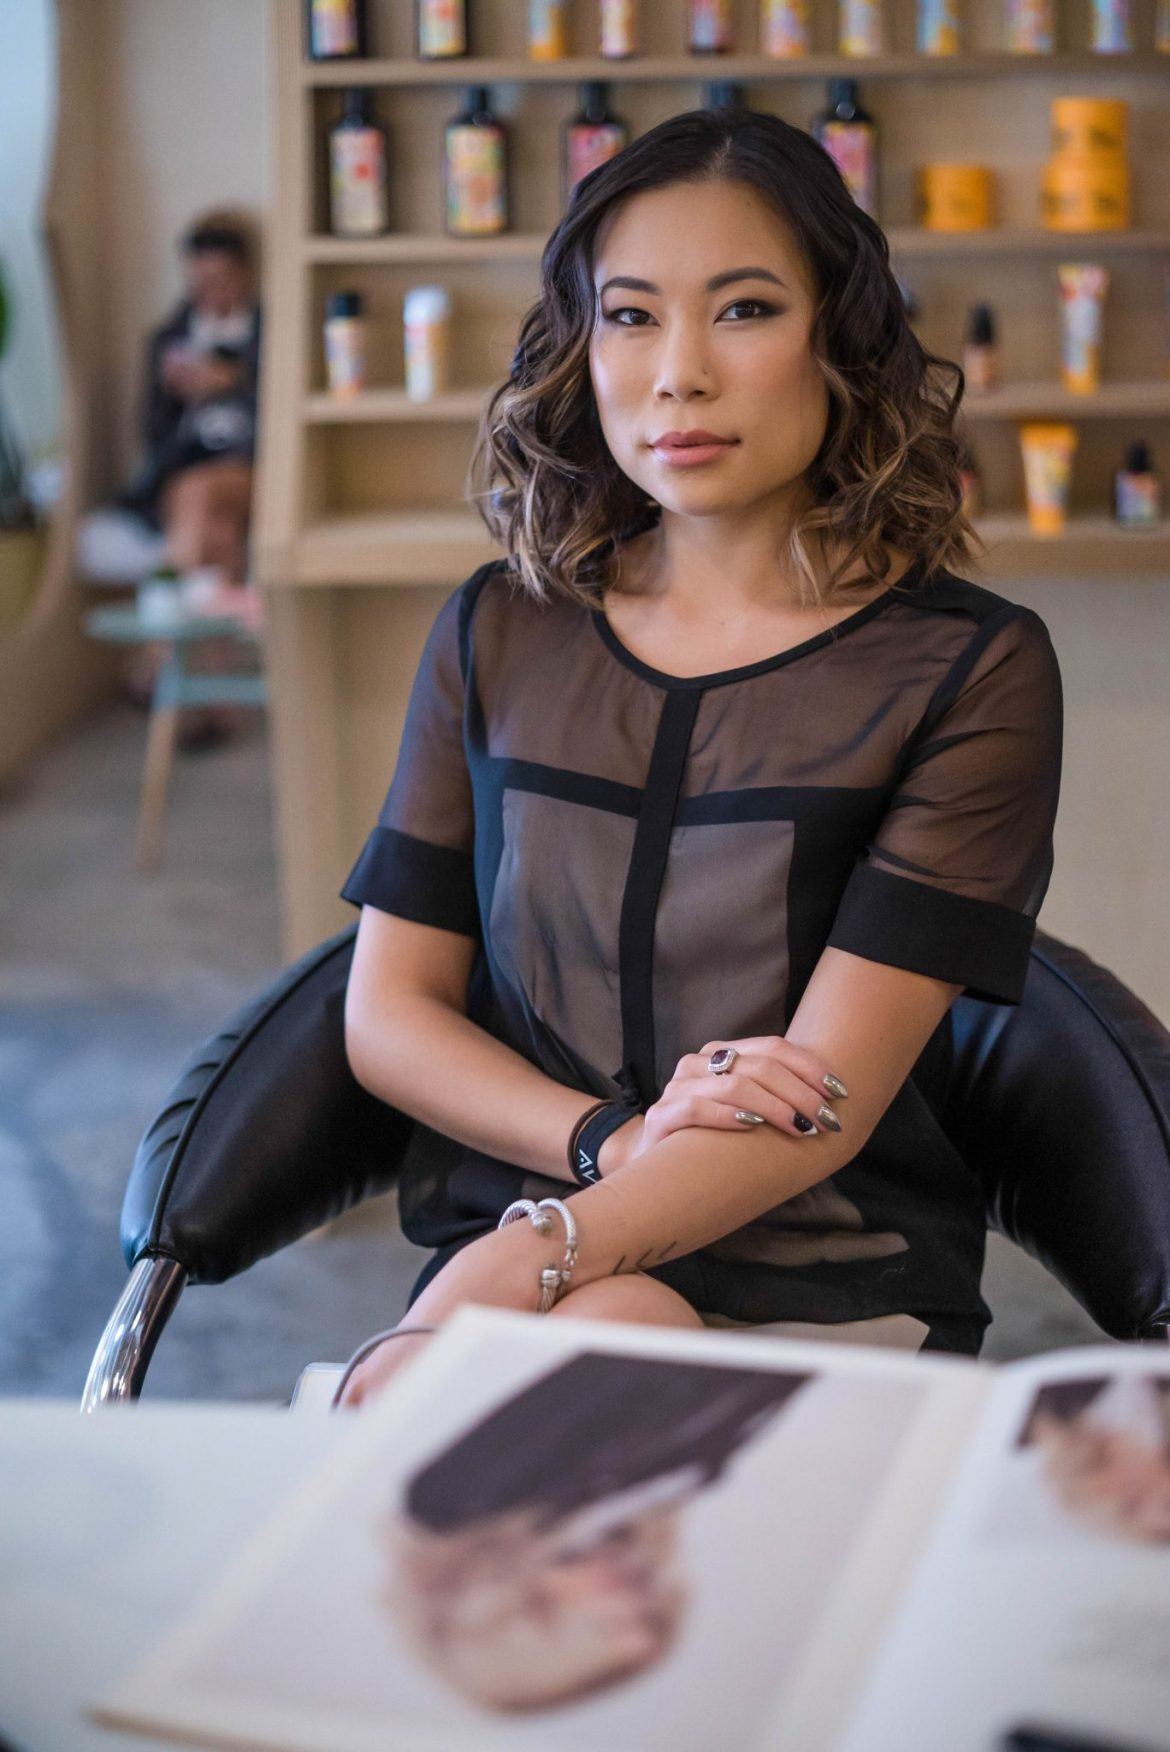 Kasey Ma, influencer and blogger of The StyleWright getting her hair done at Amika Styleblow in Brooklyn